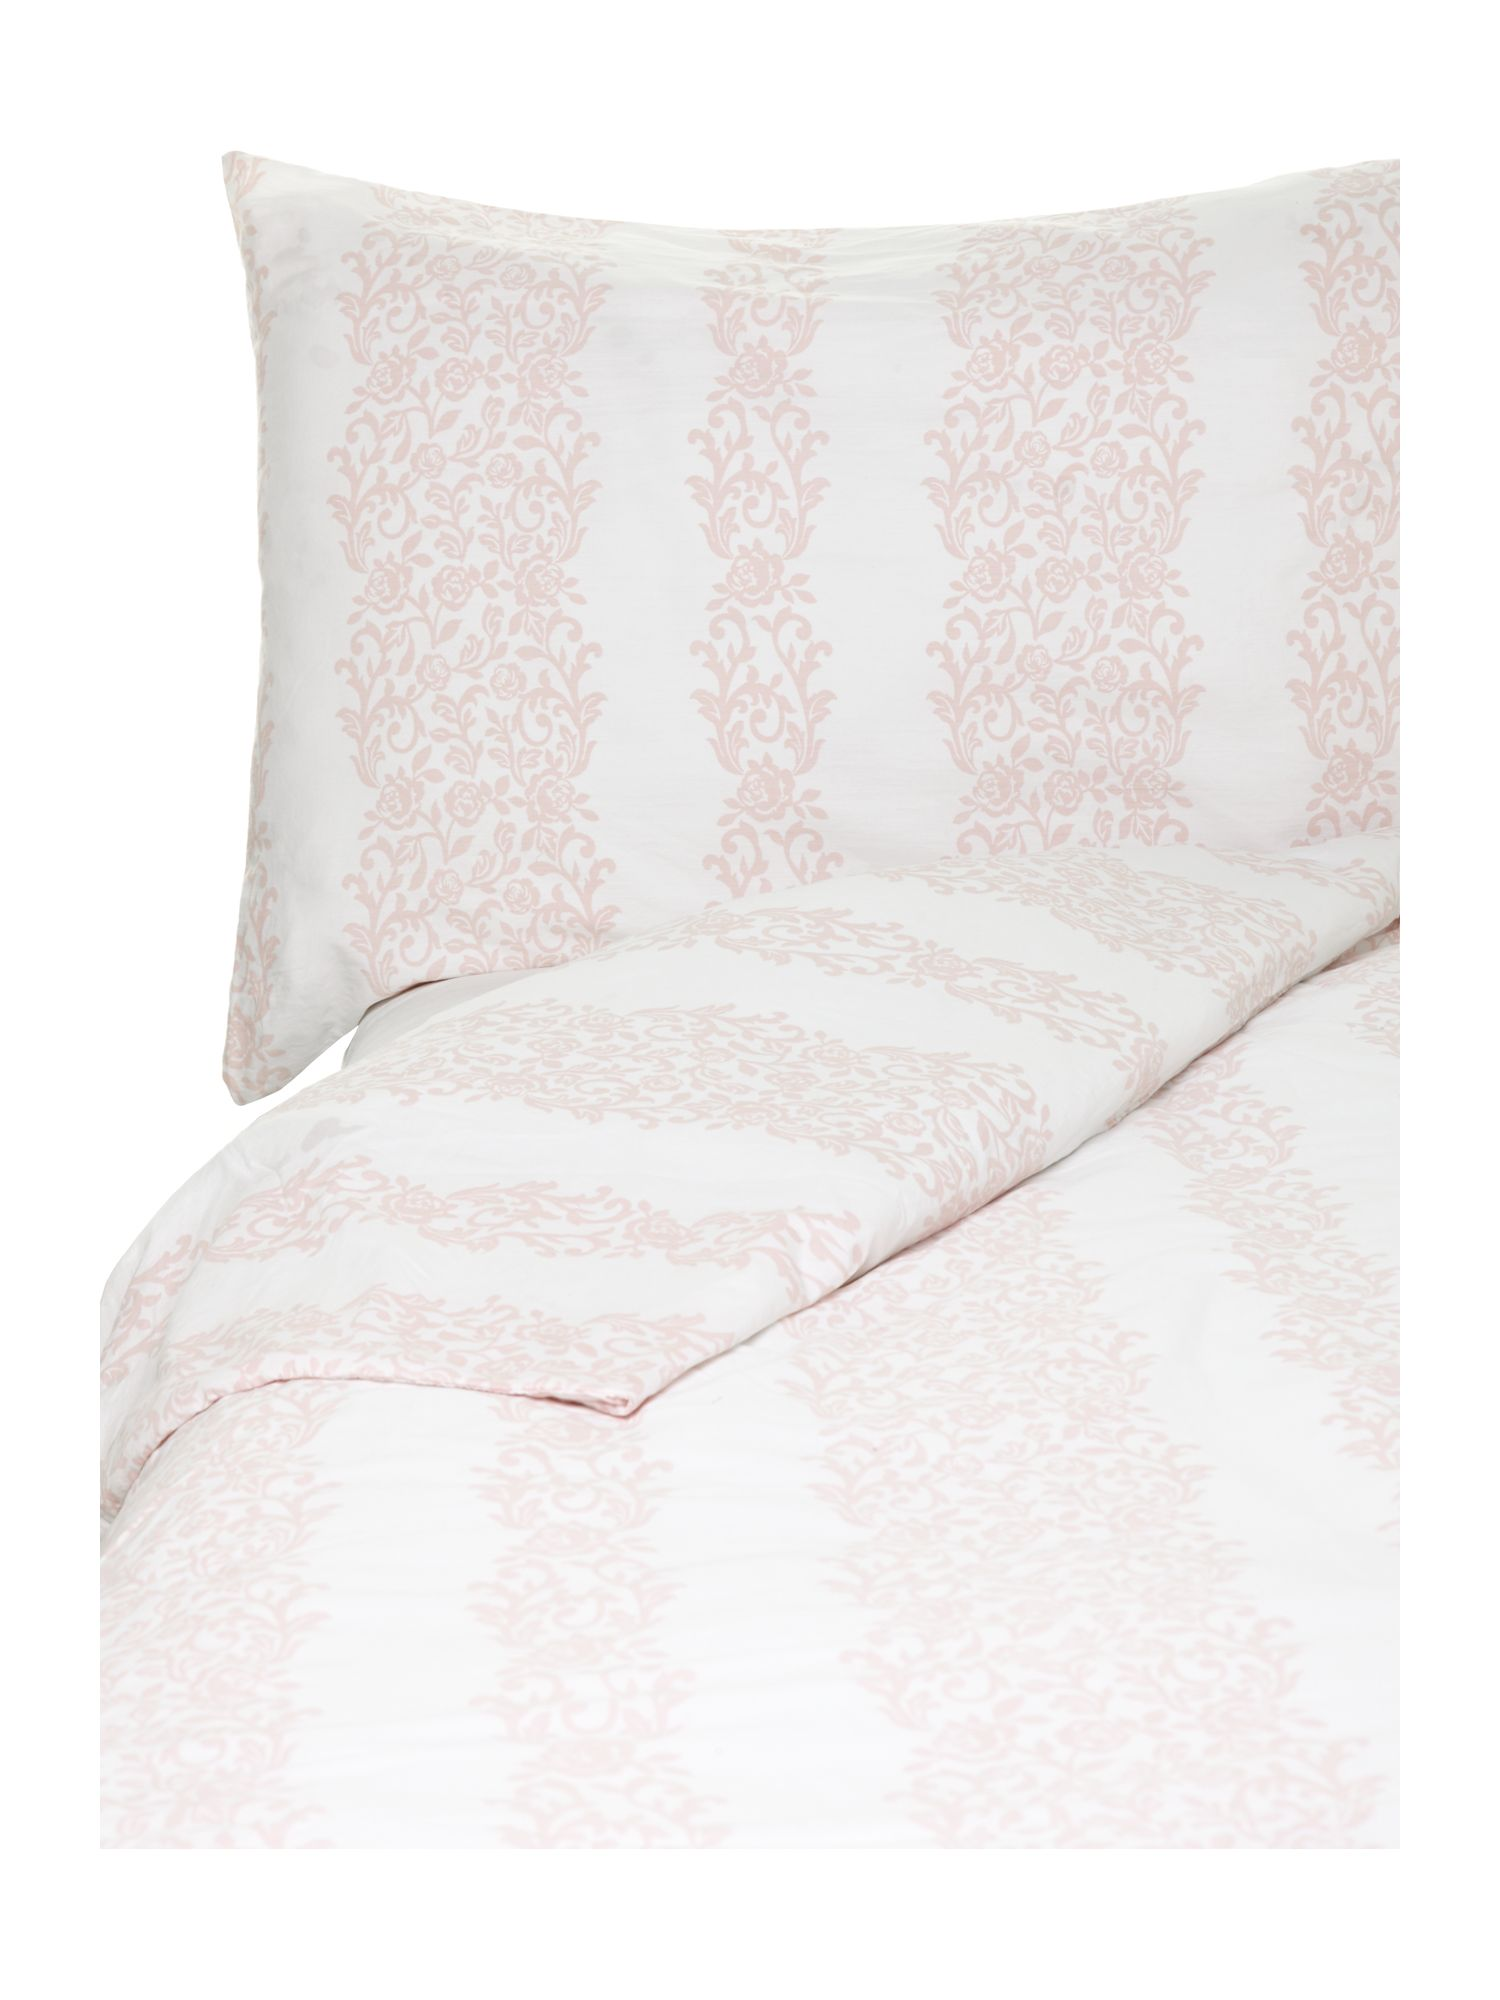 Voile white frill bed linen in pink